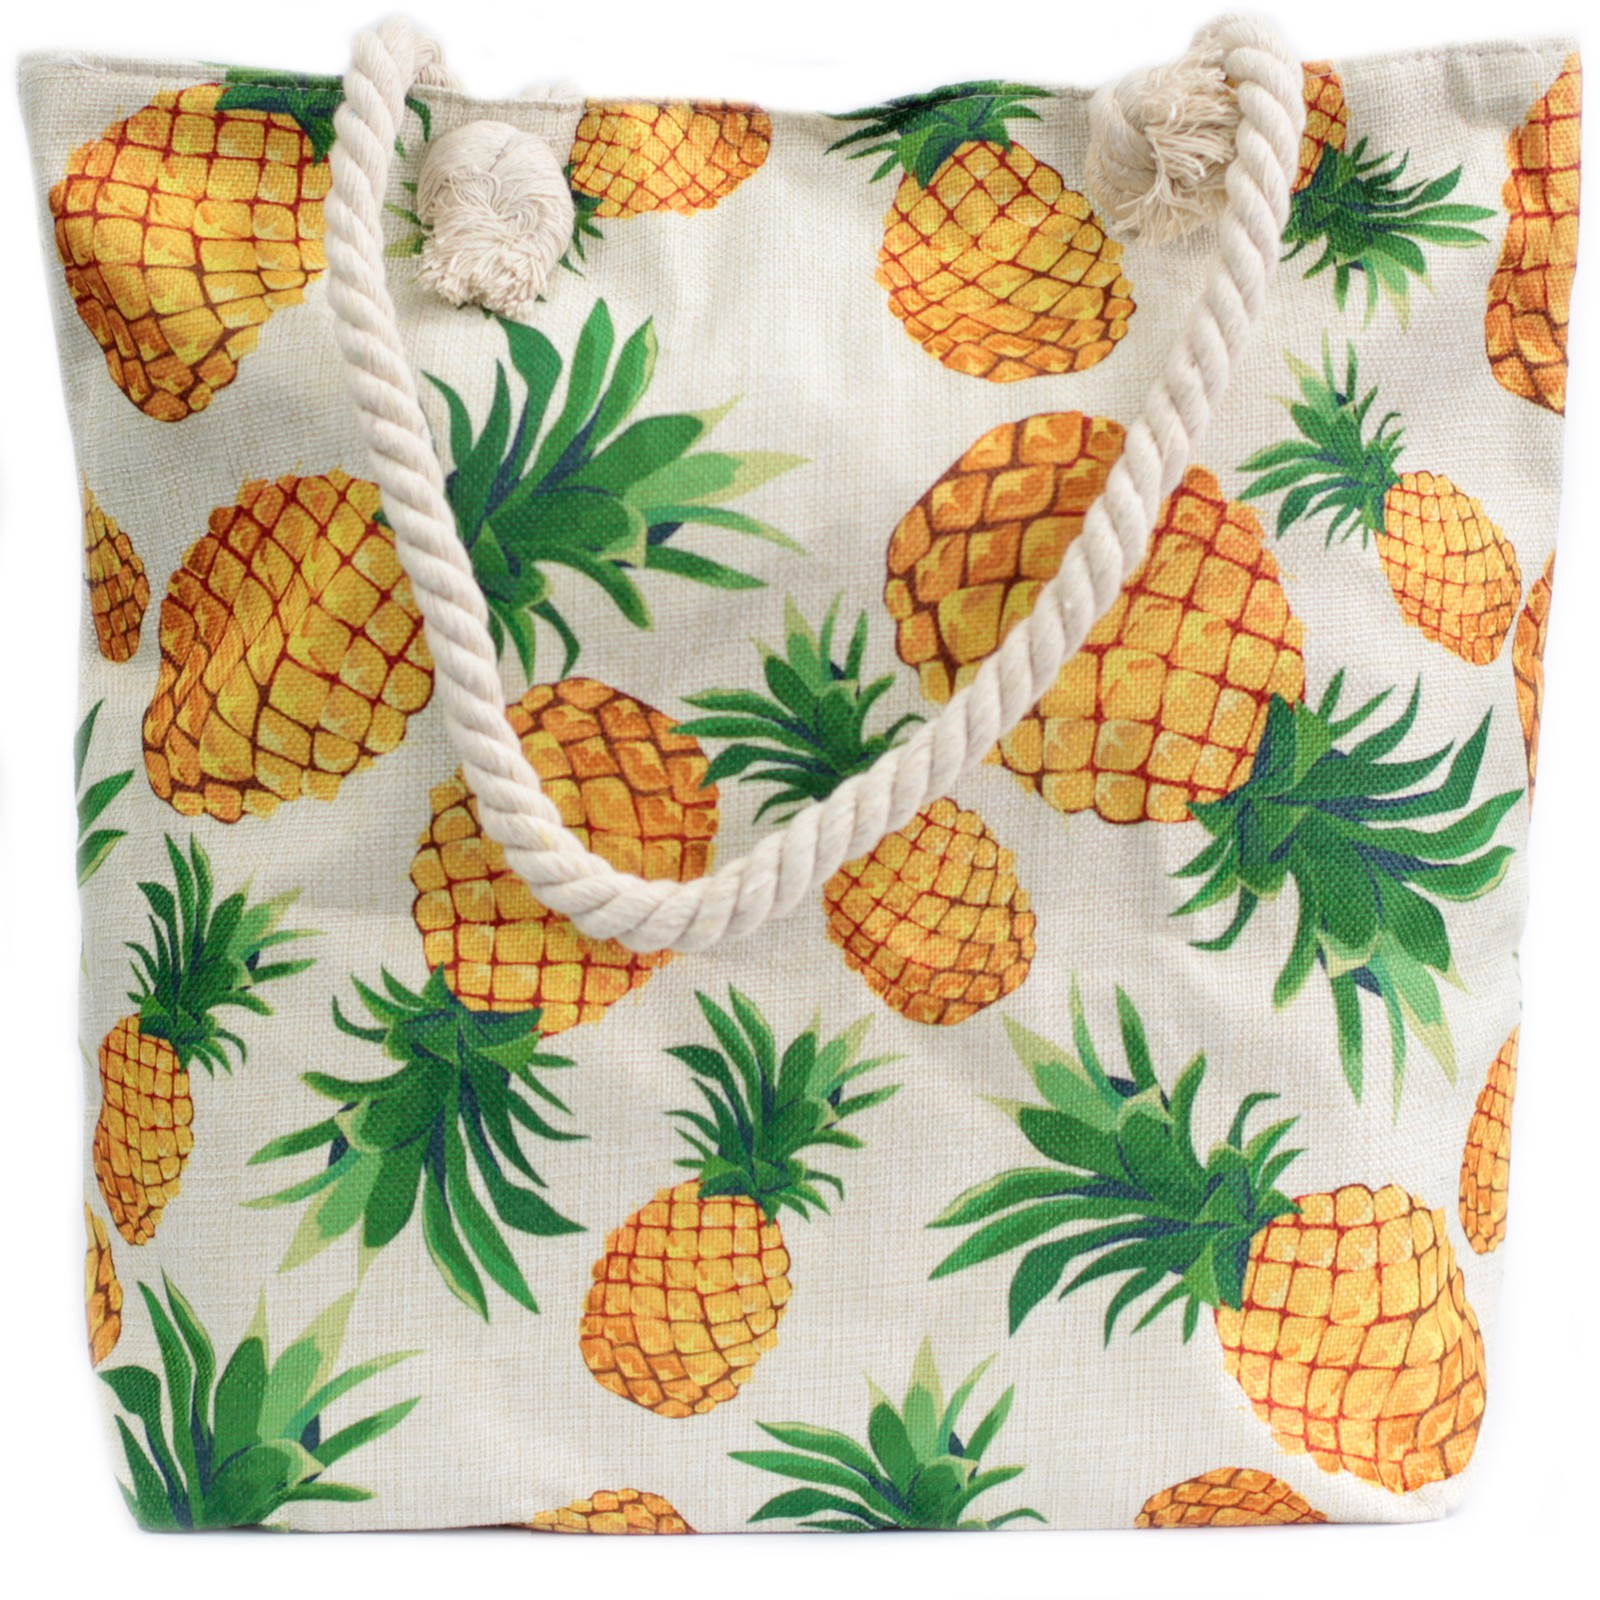 Rope Handle Bag - Pineapples